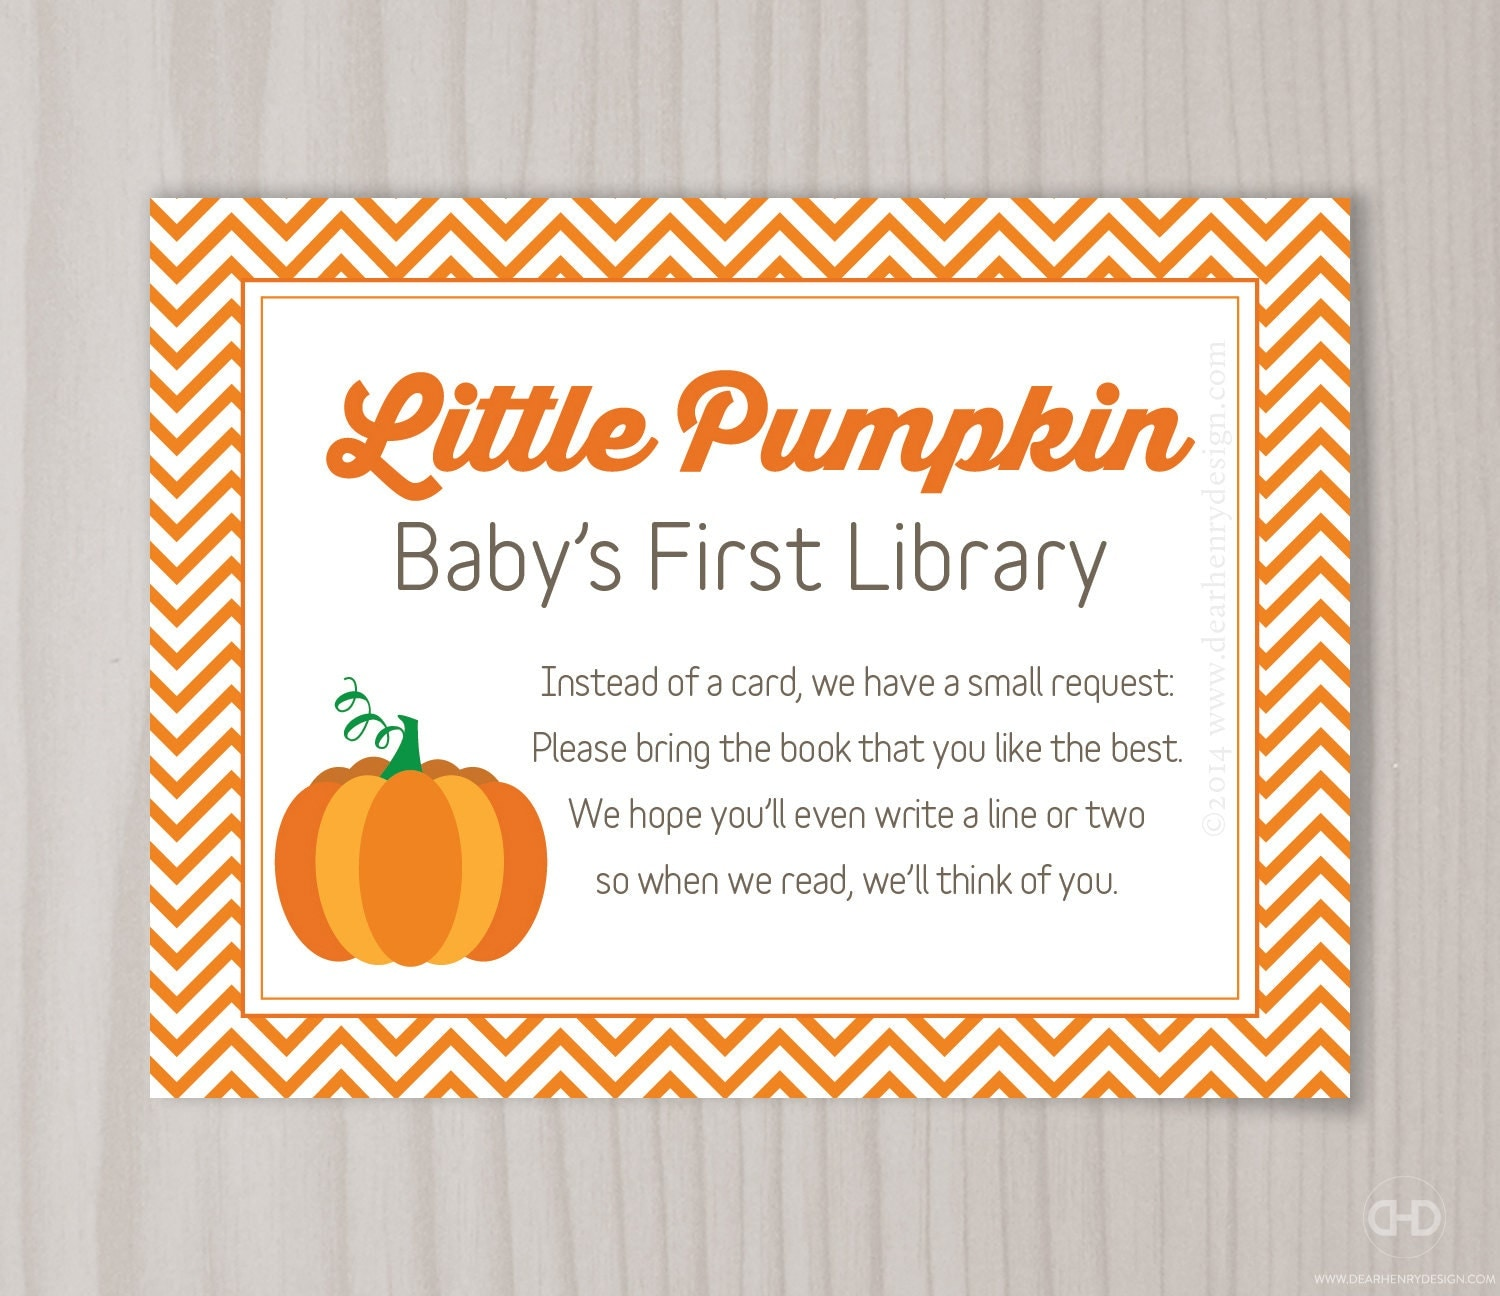 Little Pumpkin Book Request Card Pumpkin Baby Shower Bring a